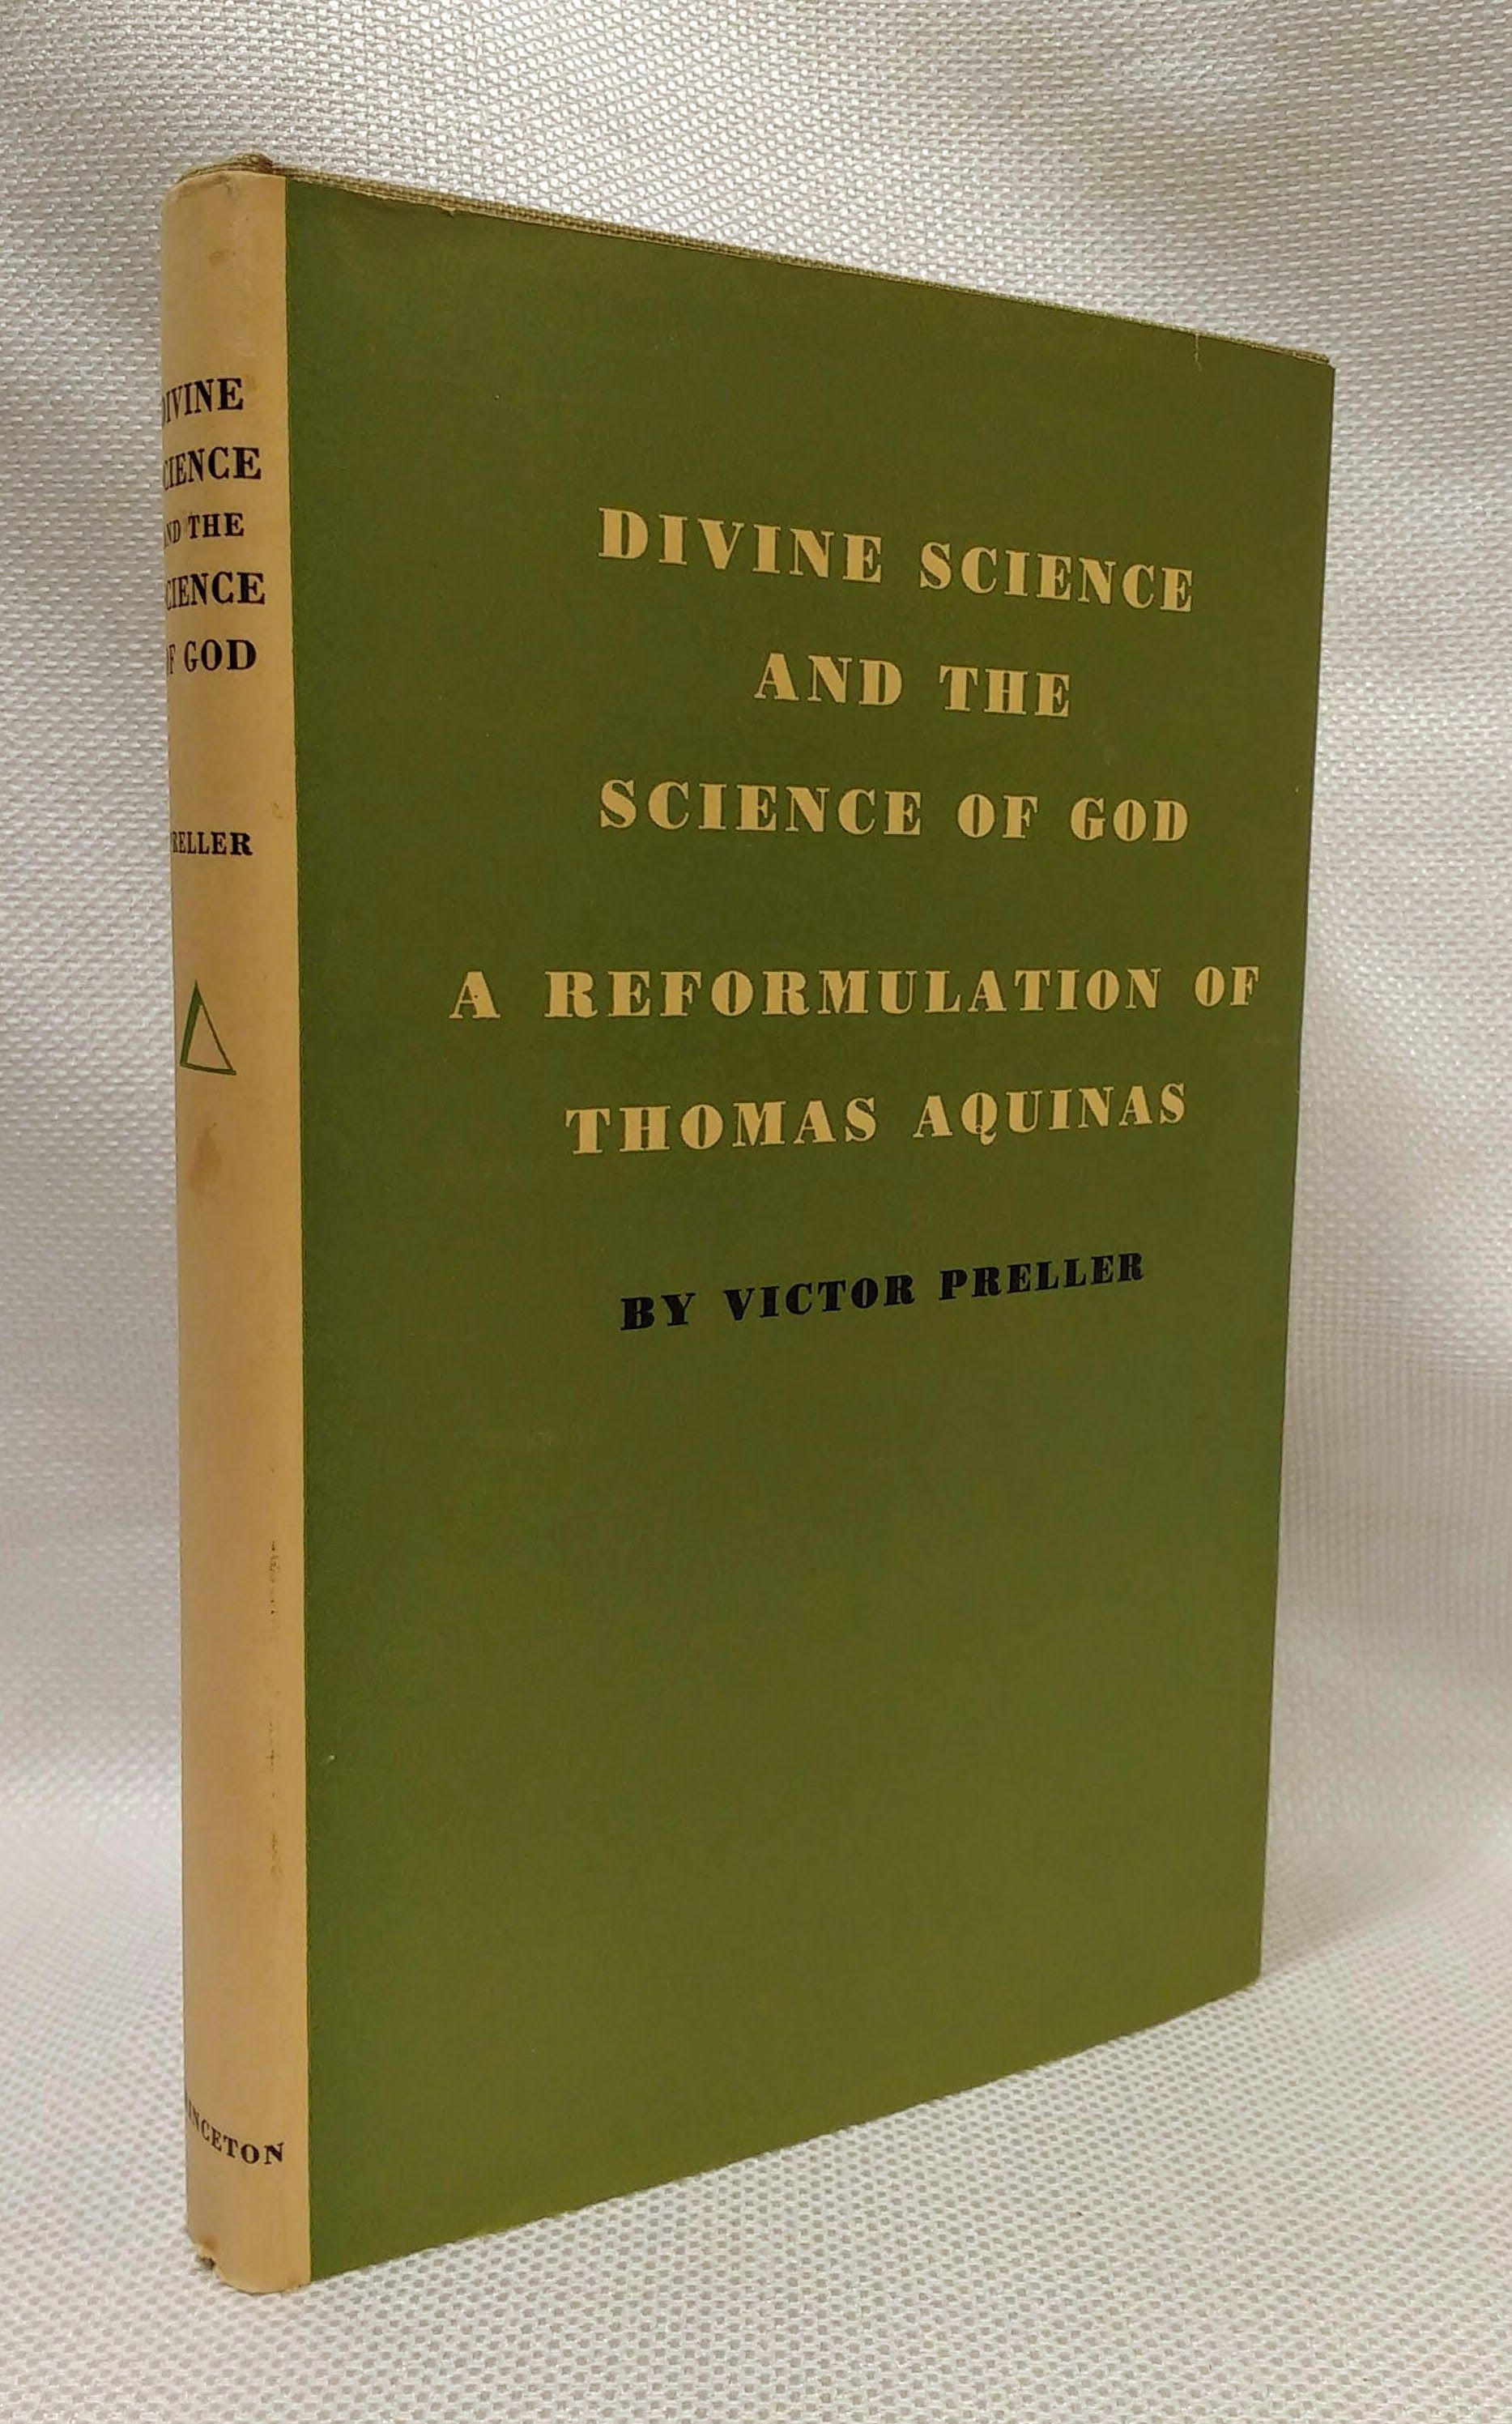 Divine Science and the Science of God, Preller, Victor